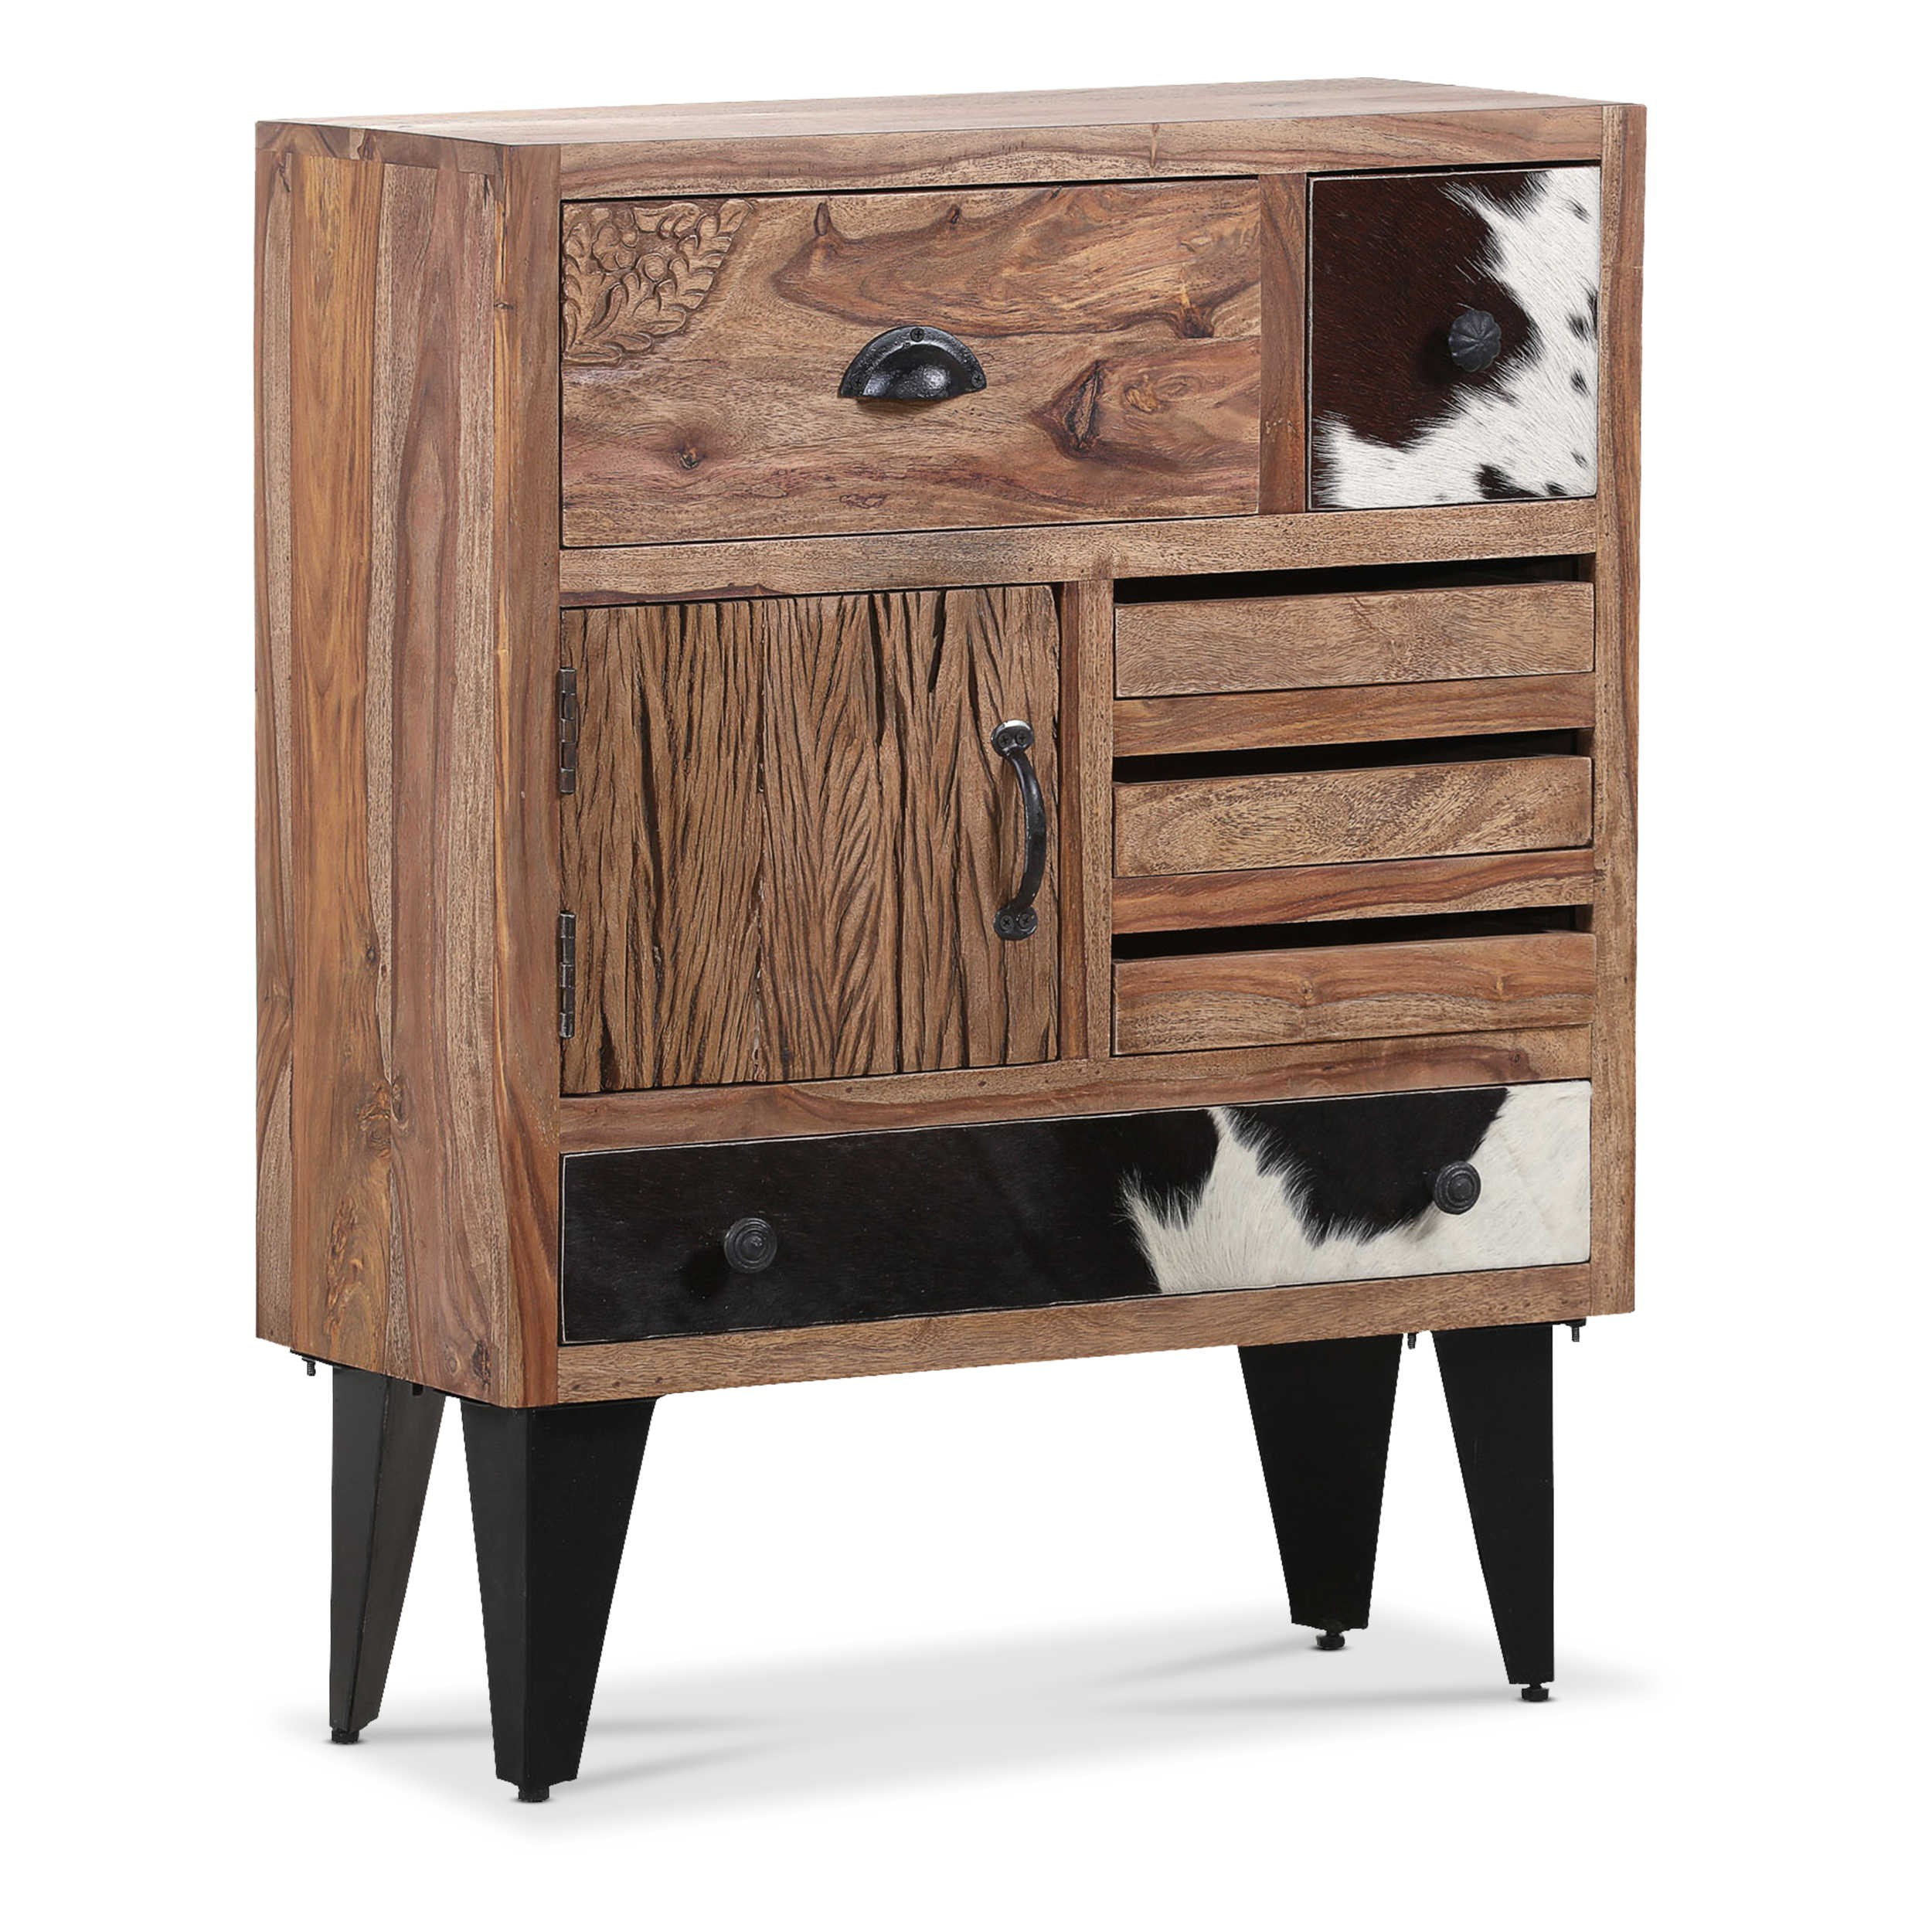 gutmann factory kommode bedford sheesham holz online kaufen bei woonio. Black Bedroom Furniture Sets. Home Design Ideas